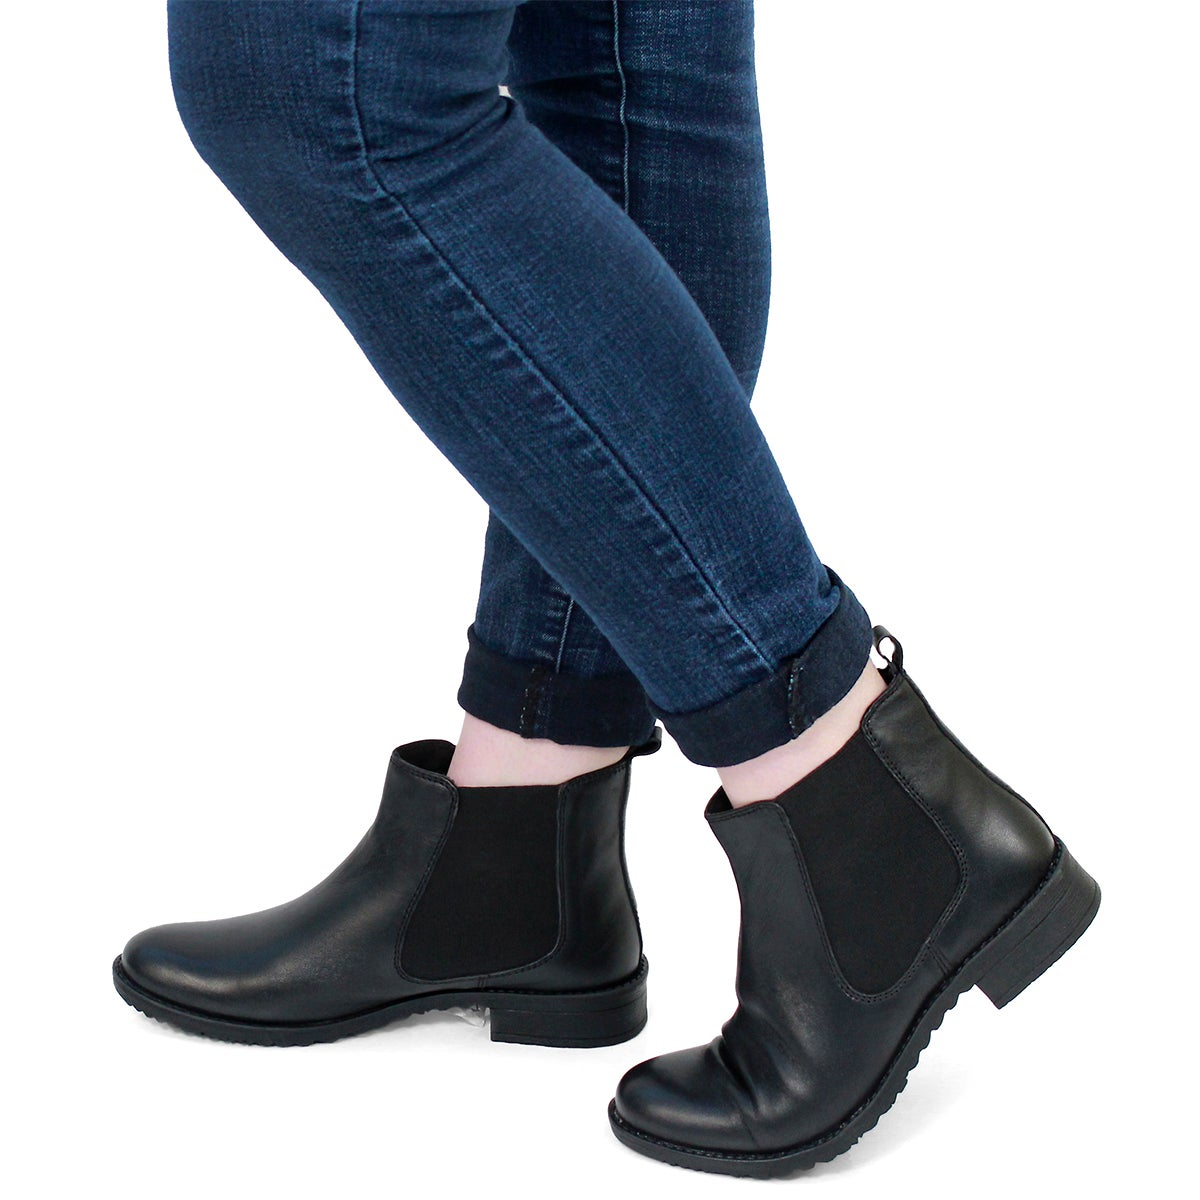 Lds Darilyn black lthr chelsea boot